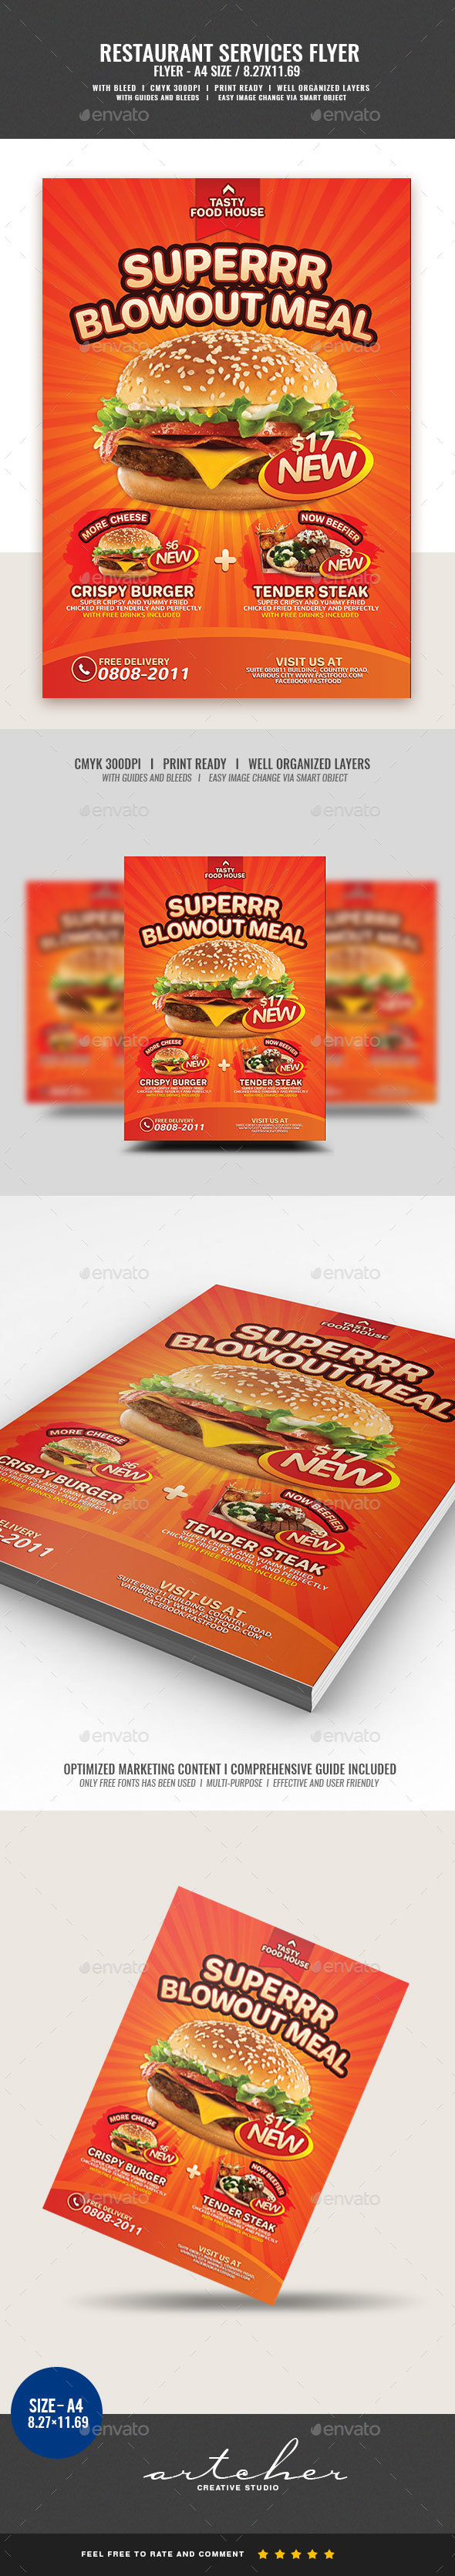 Fast Food Product Introduction - Restaurant Flyers